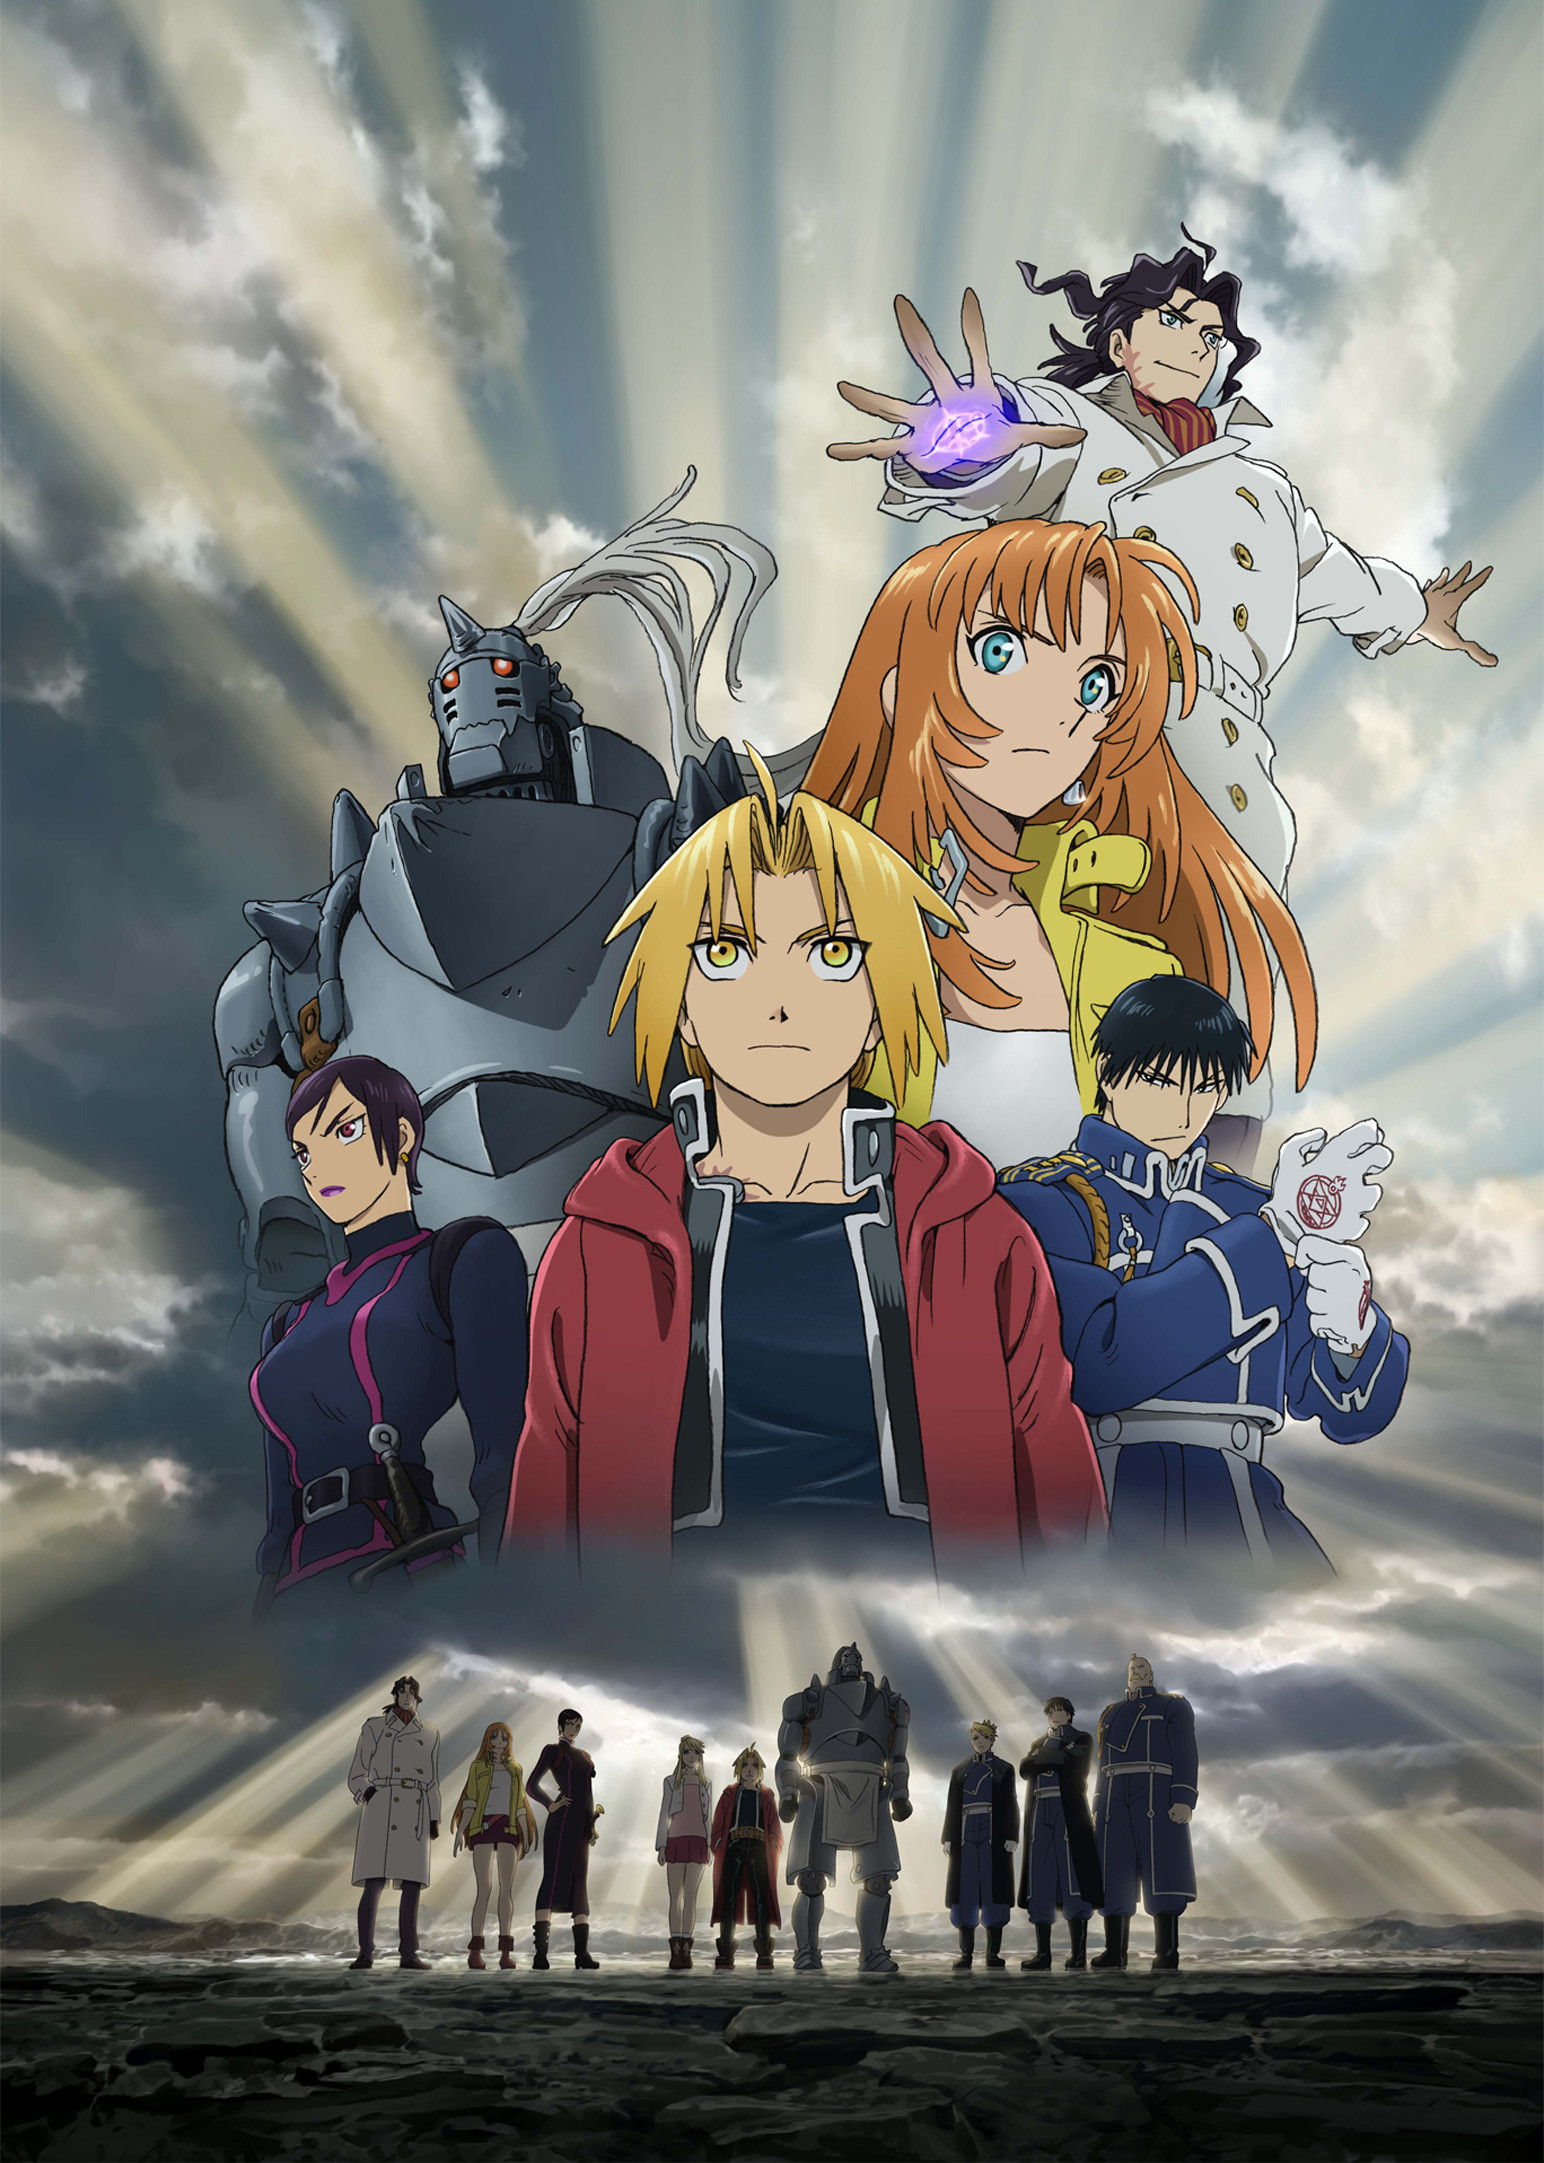 fullmetal alchemist the sacred star of milos full metal fullmetal alchemist the sacred star of milos full metal alchemist fandom powered by wikia